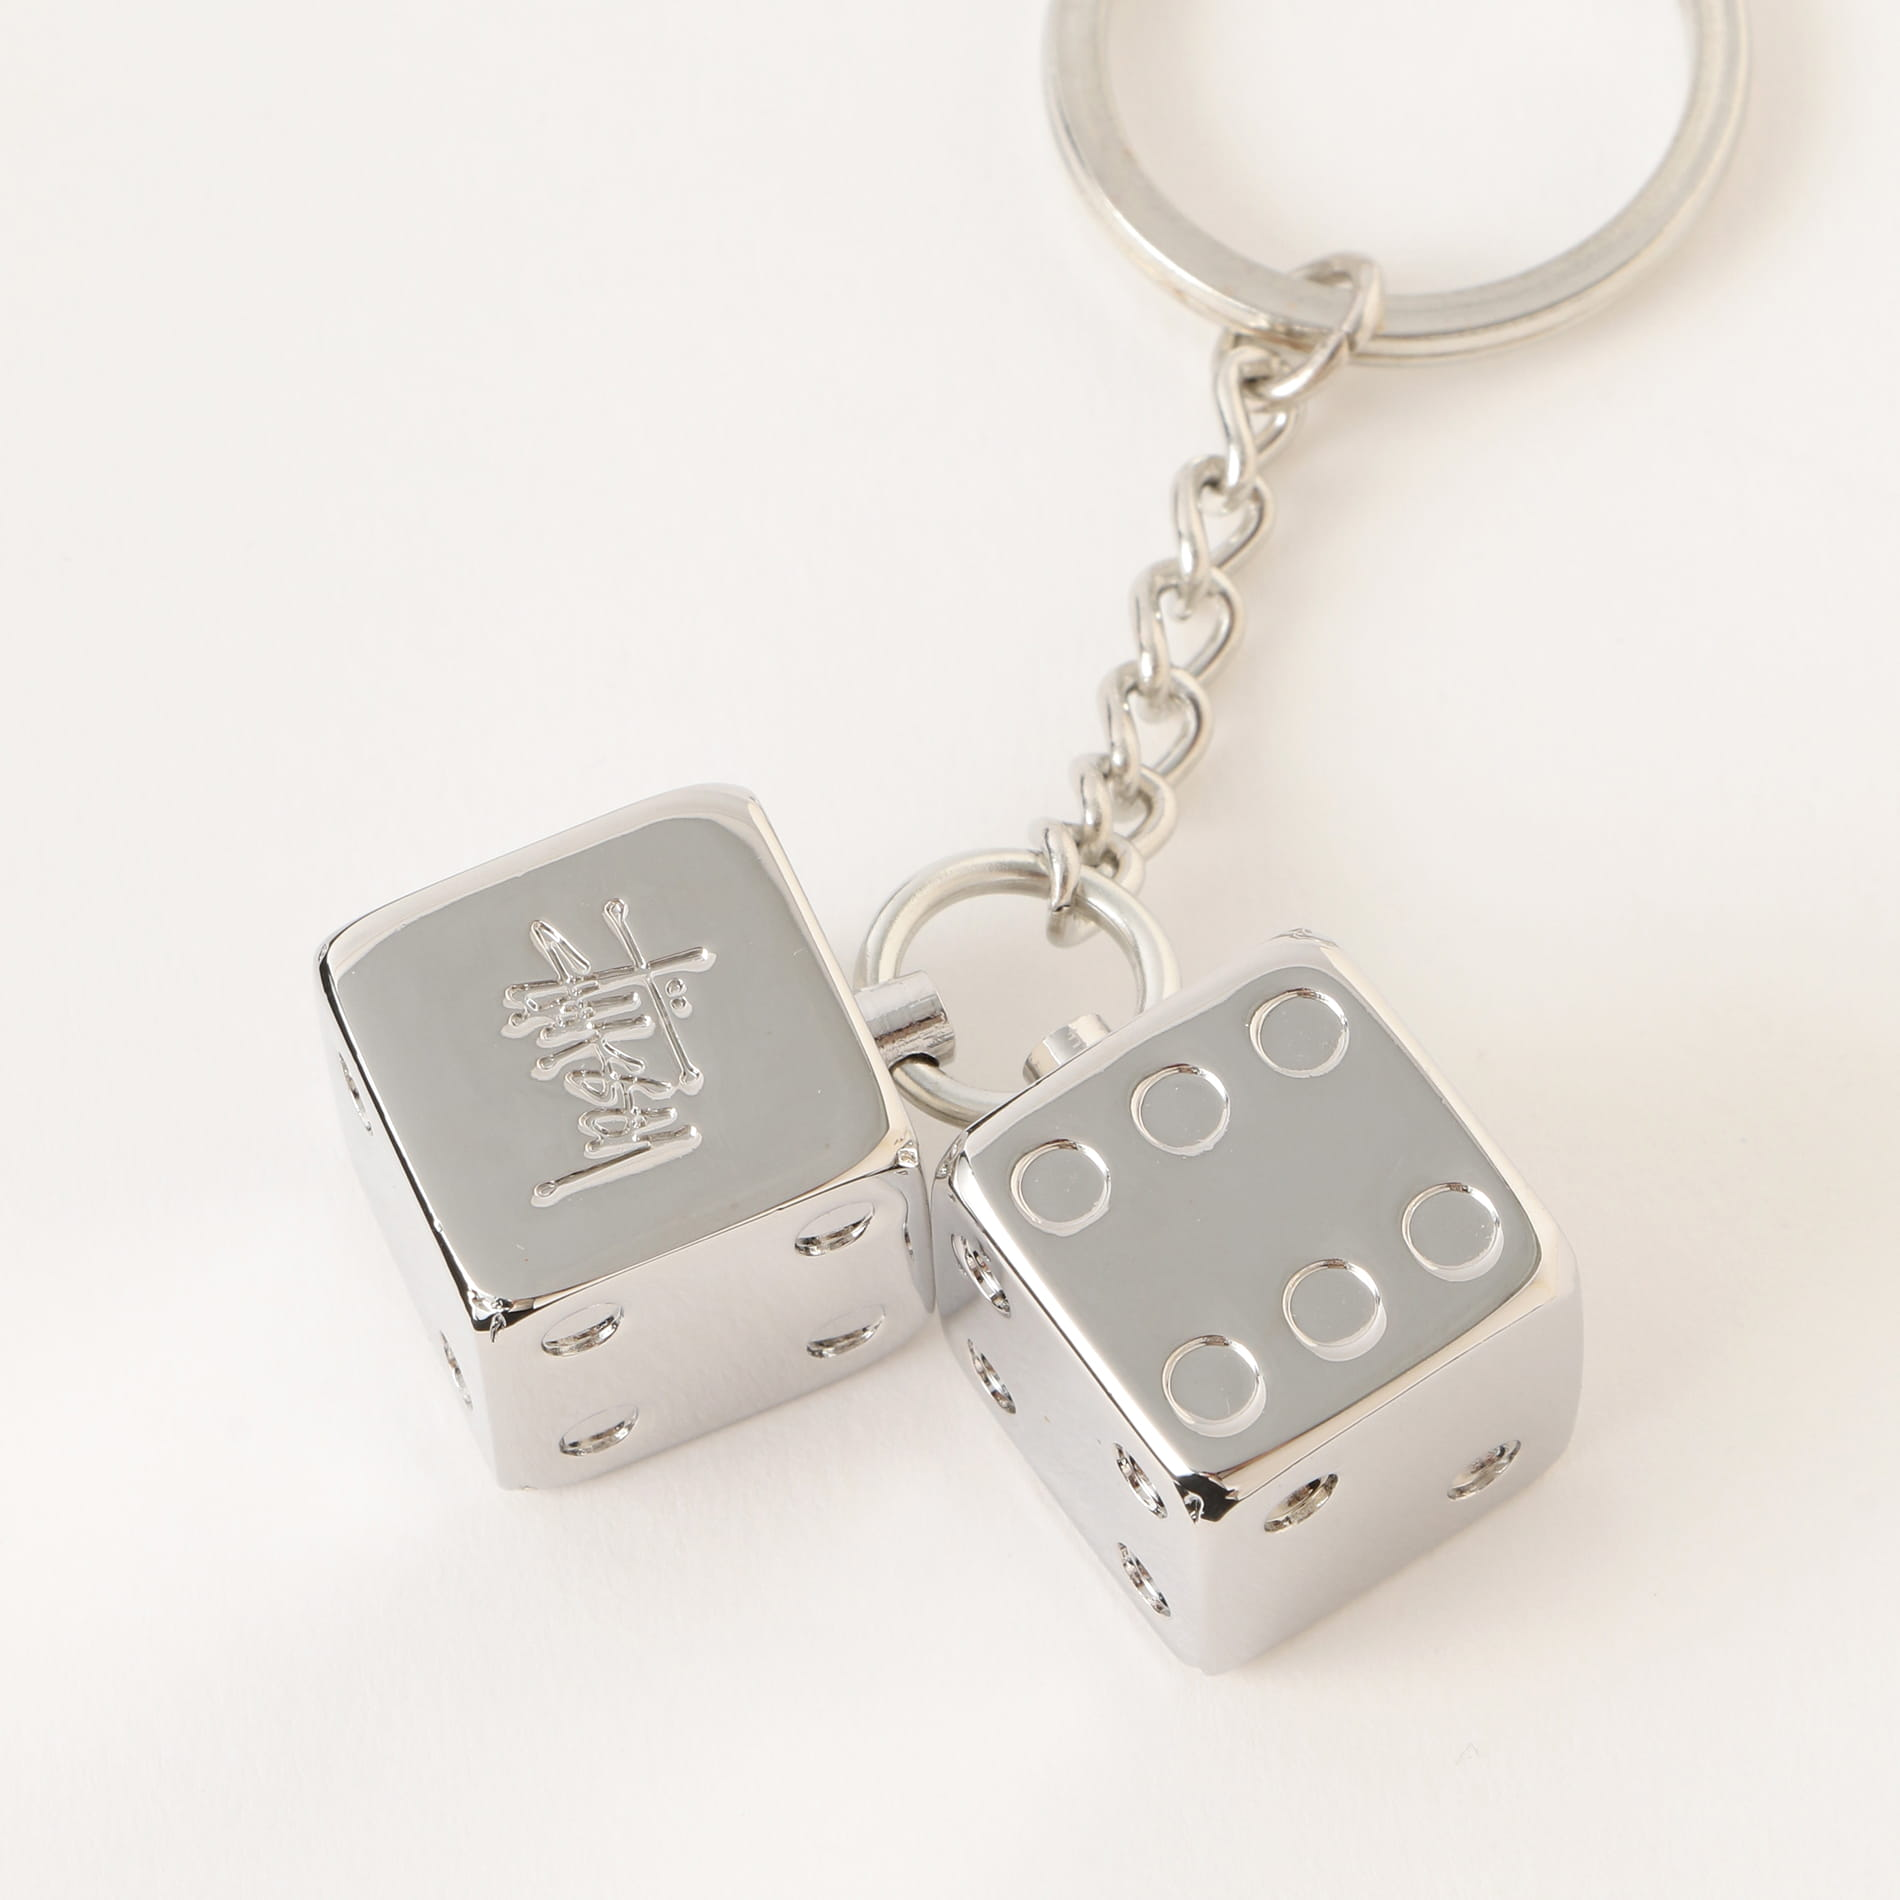 【Stussy】MEN Metal Dice Keychain 138708